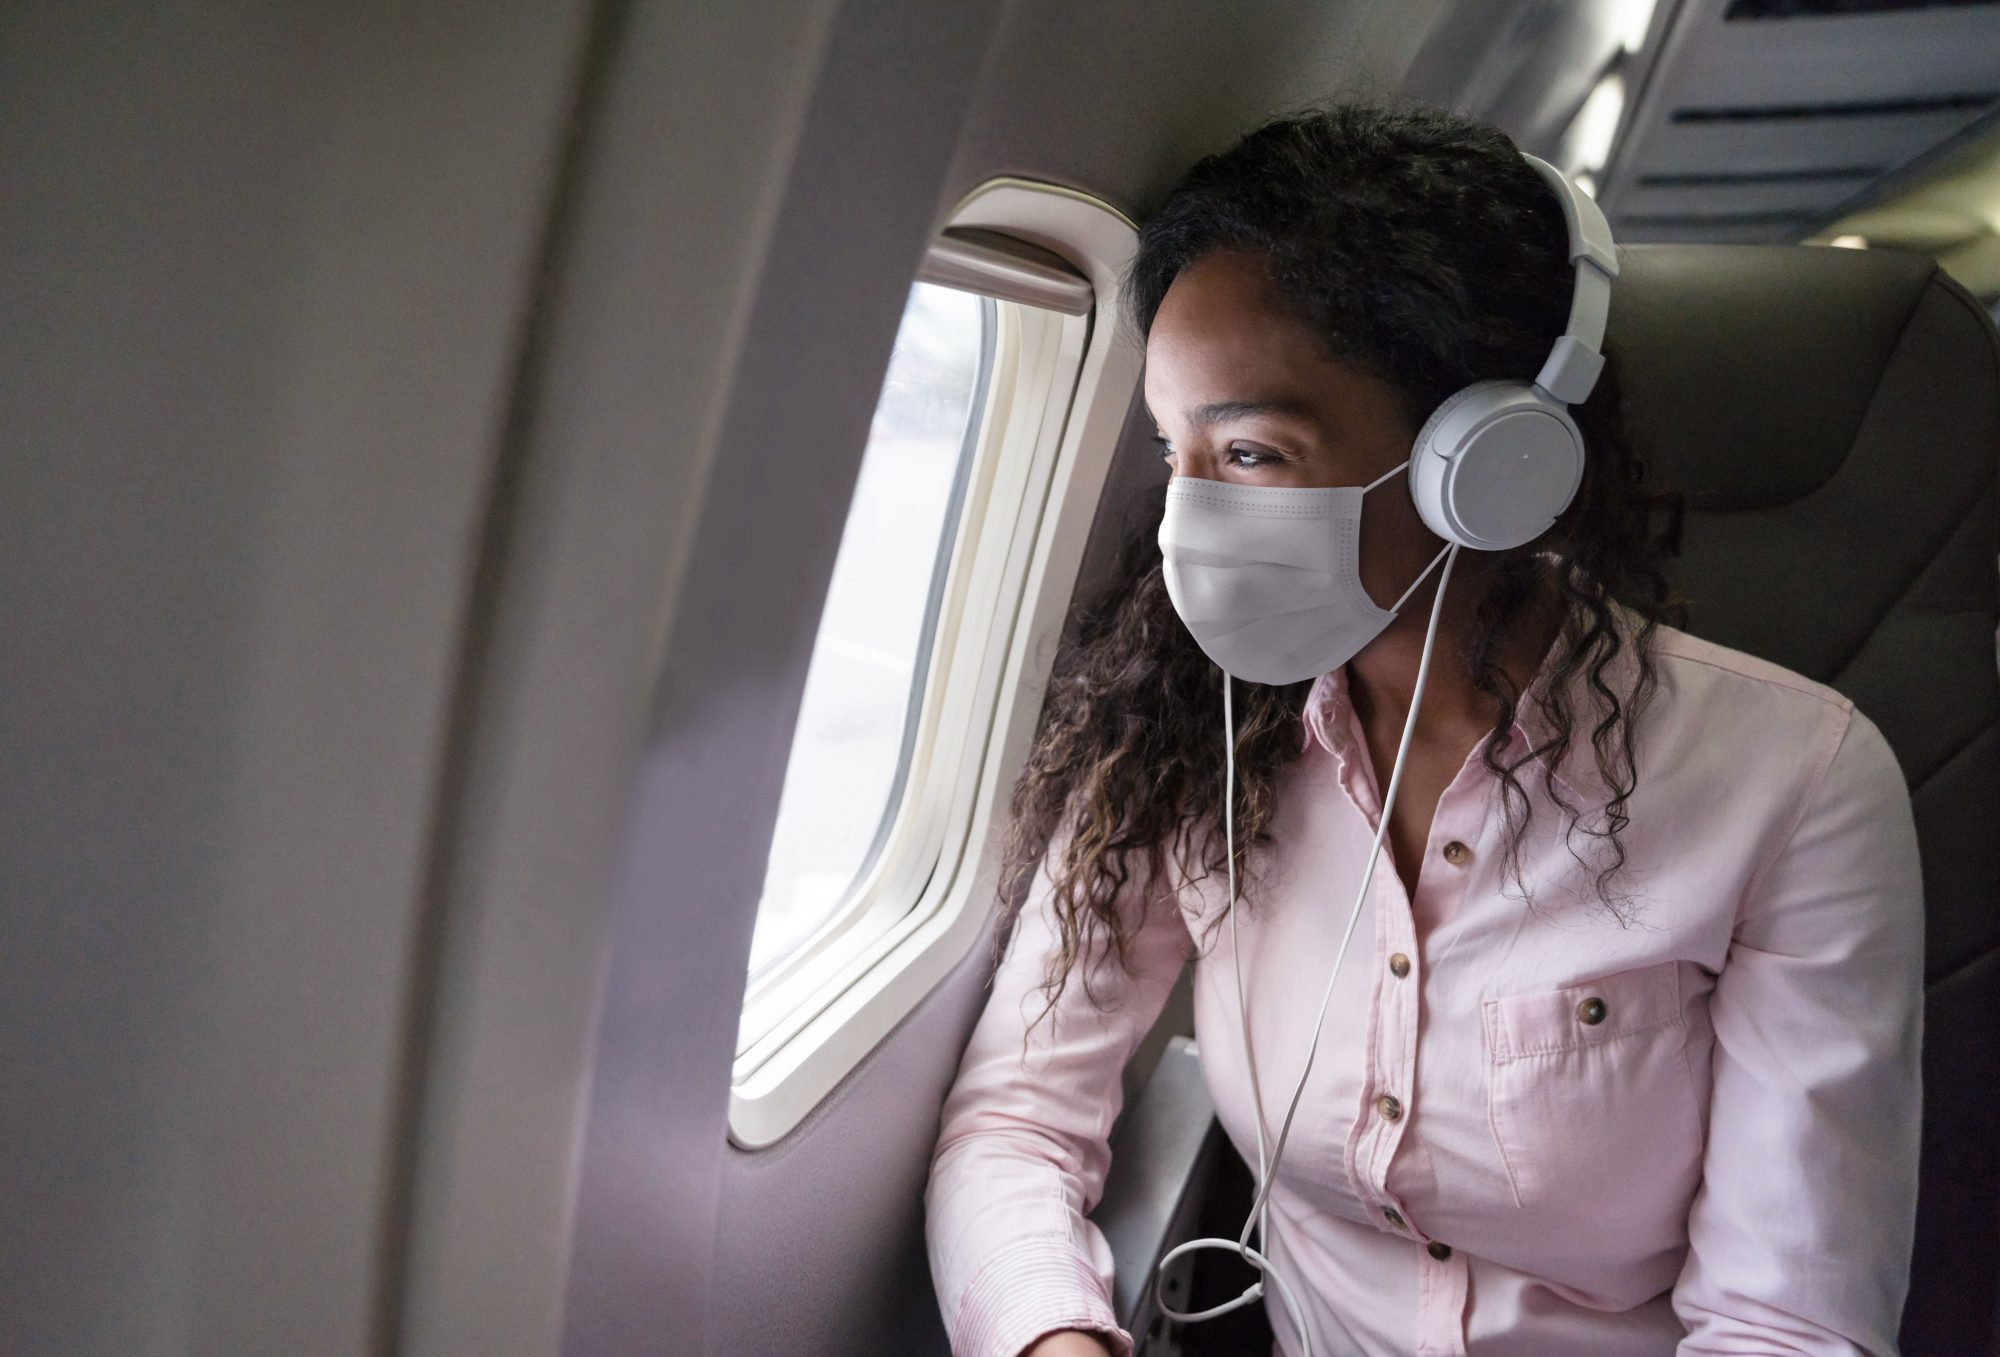 woman wearing face mask on ariplane